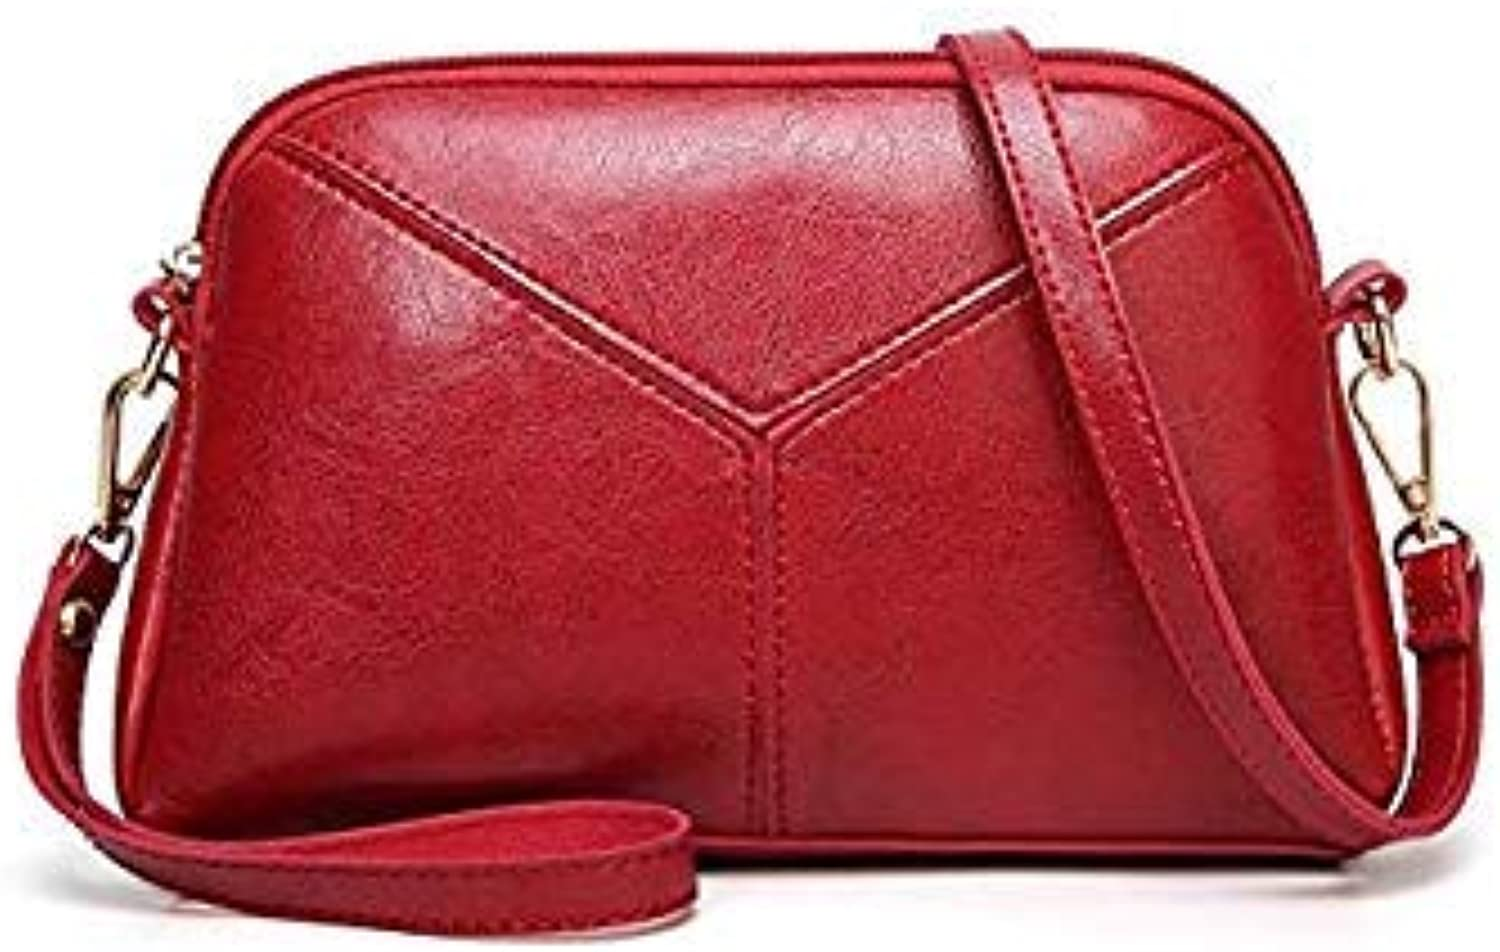 Bloomerang Women Shoulder Bags Fashion Women Crossbody Bags Oil Wax Leather Tote Bag Casual Pu Leather Messenger Bag color red